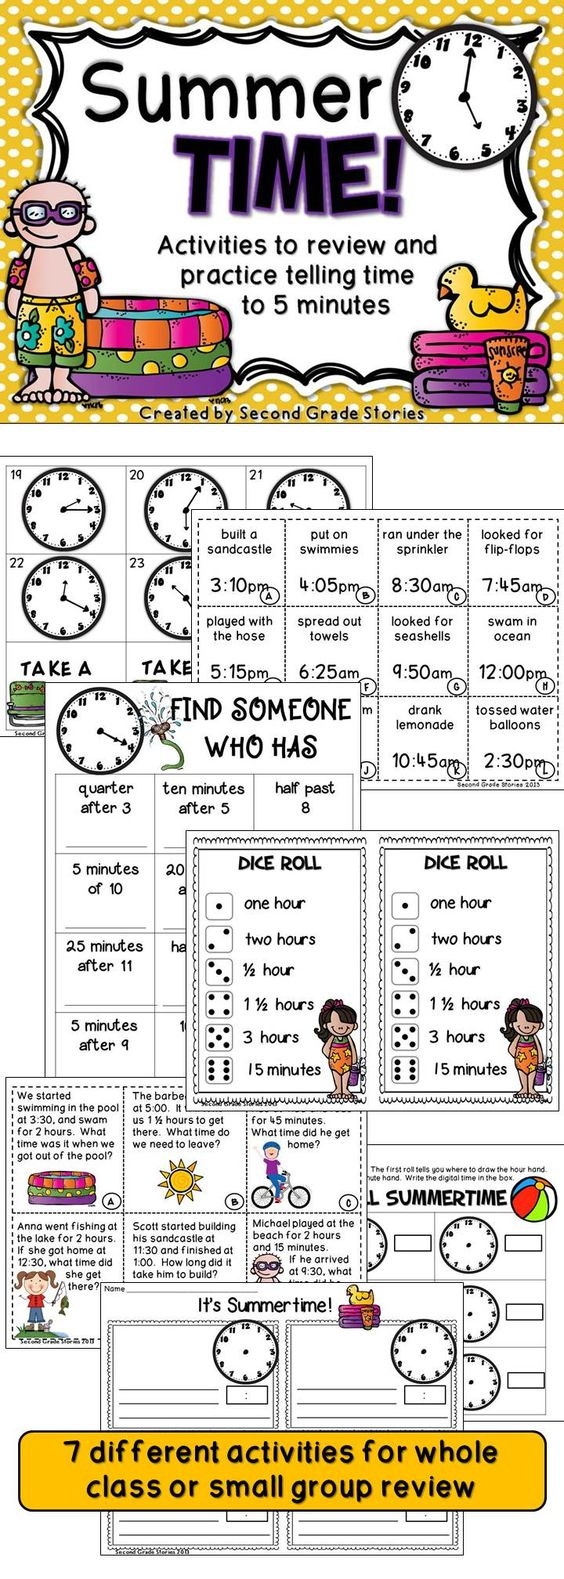 Worksheet Online Measurement Activities worksheet online measurement activities mikyu free telling time for to 5 minutes dice tutoring boards math summer